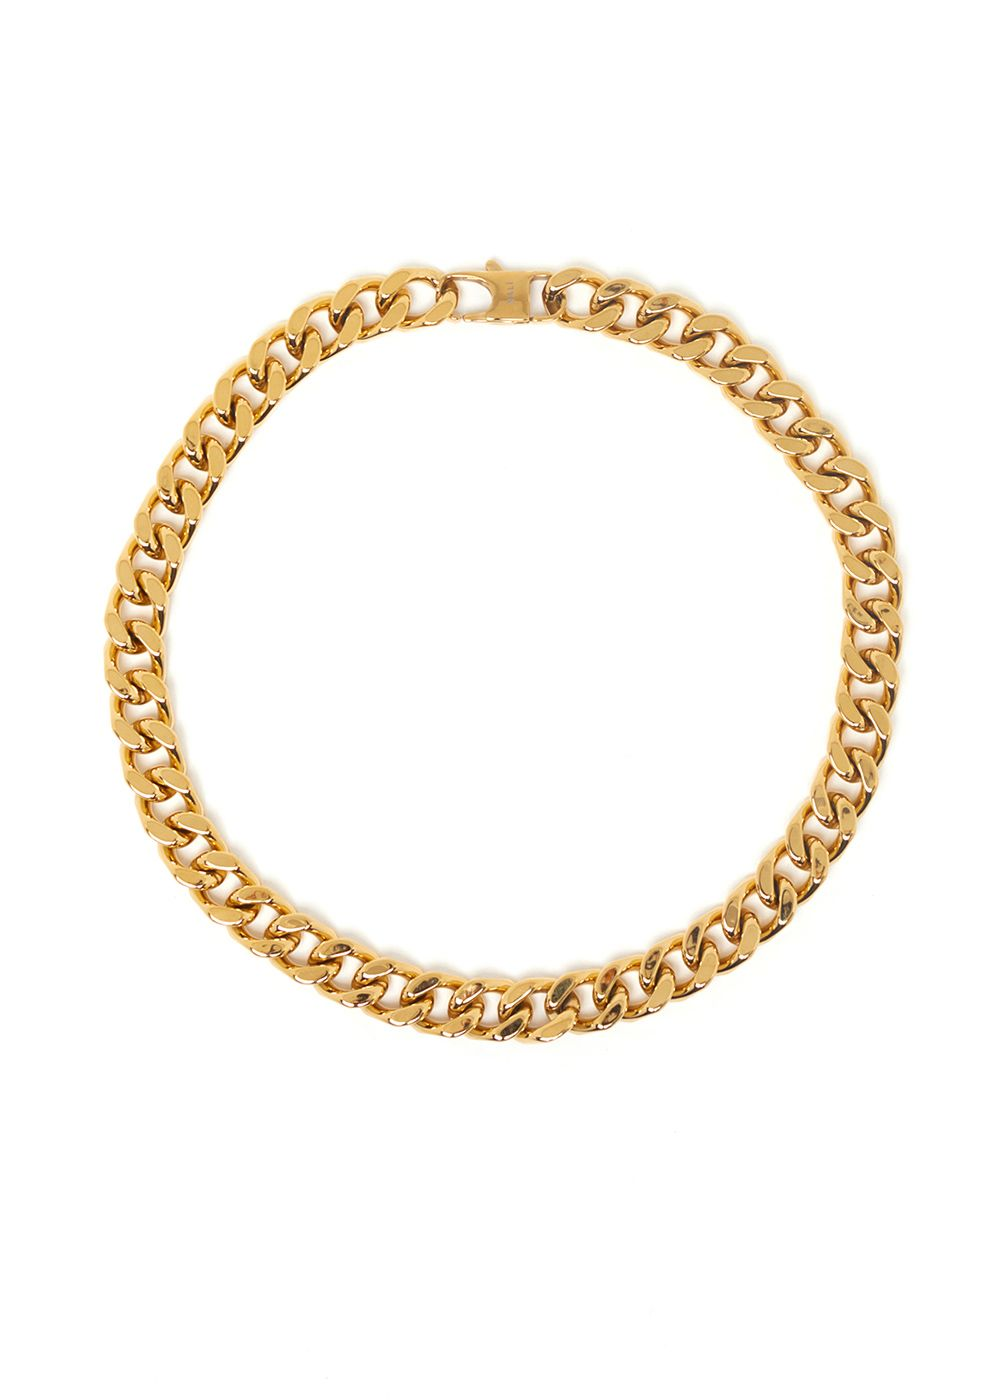 JASMIN CHAIN NECKLACE IN GOLD  STAINLESS STEEL